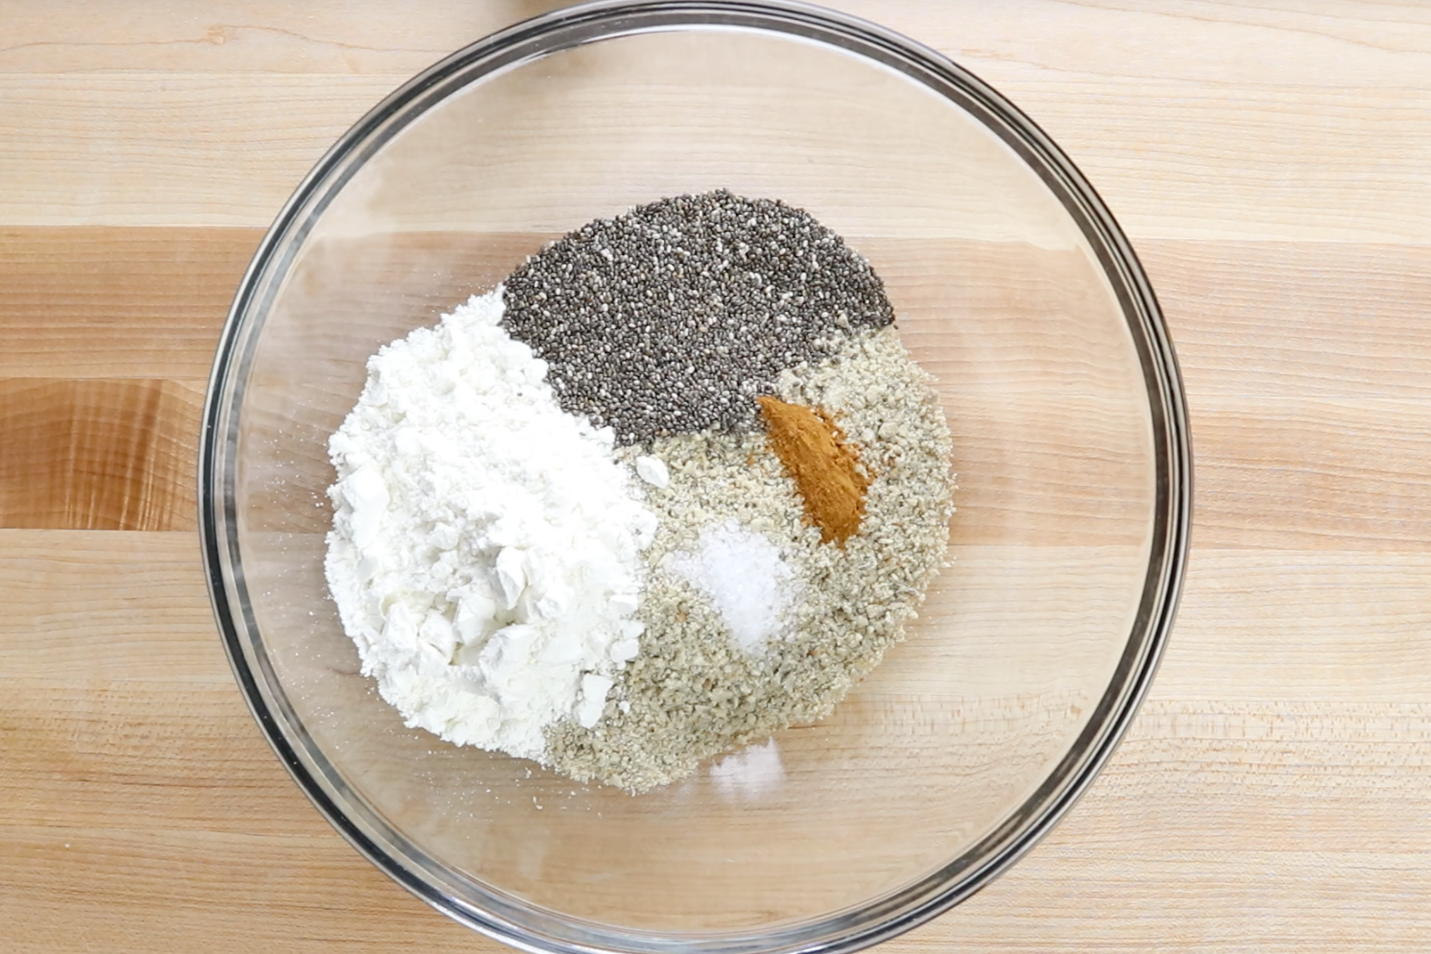 2. Mix sunflower seeds, Gluten-Free flour, Chia seeds, cinnamon and salt in a large bowl. -